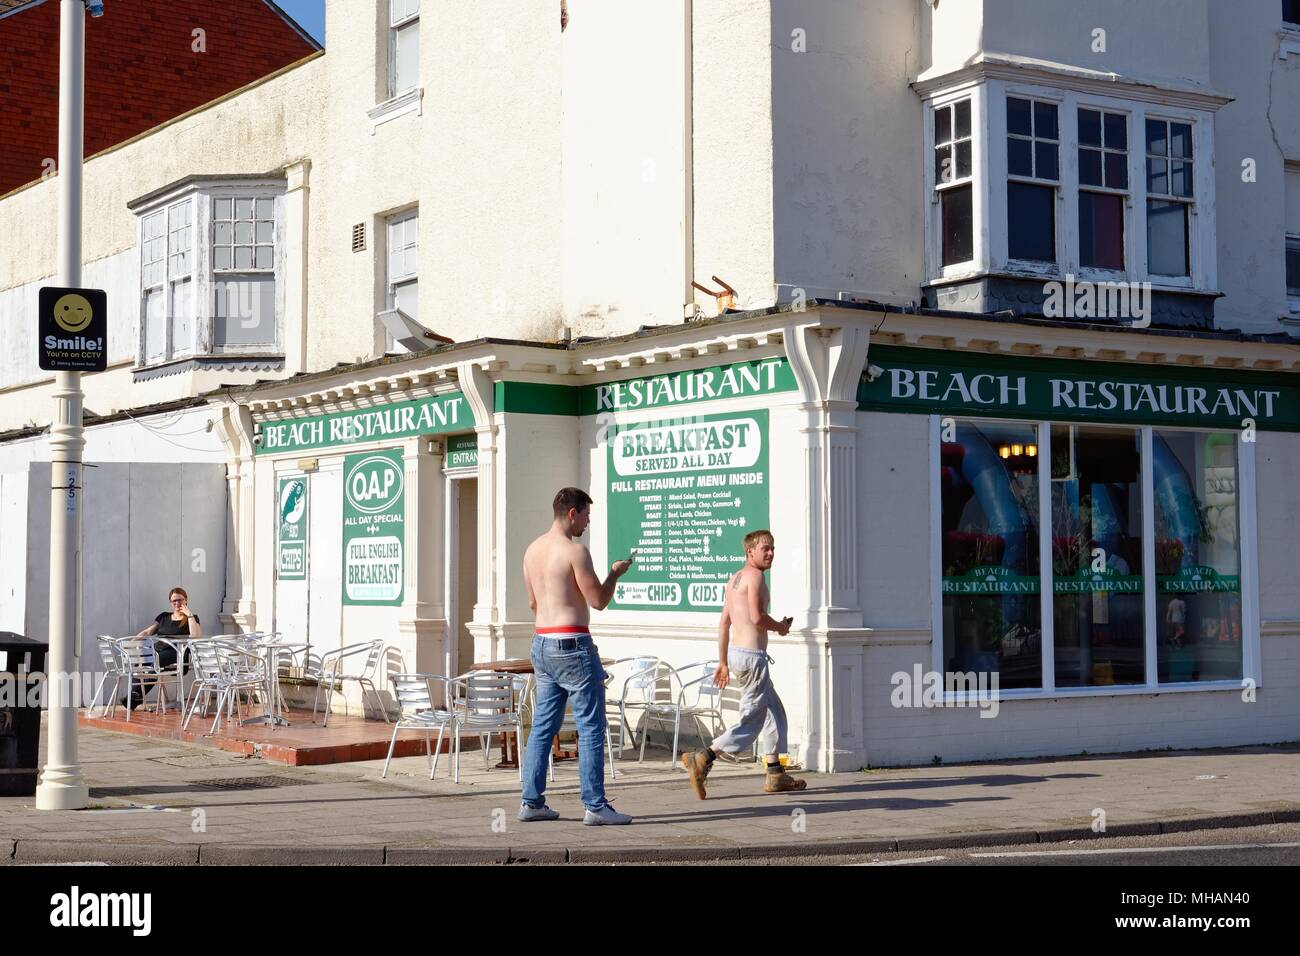 Two bare chested youths, one on mobile phone walking past seafront cafe with lady sitting outside, in Bognor Regis West Sussex England UK - Stock Image